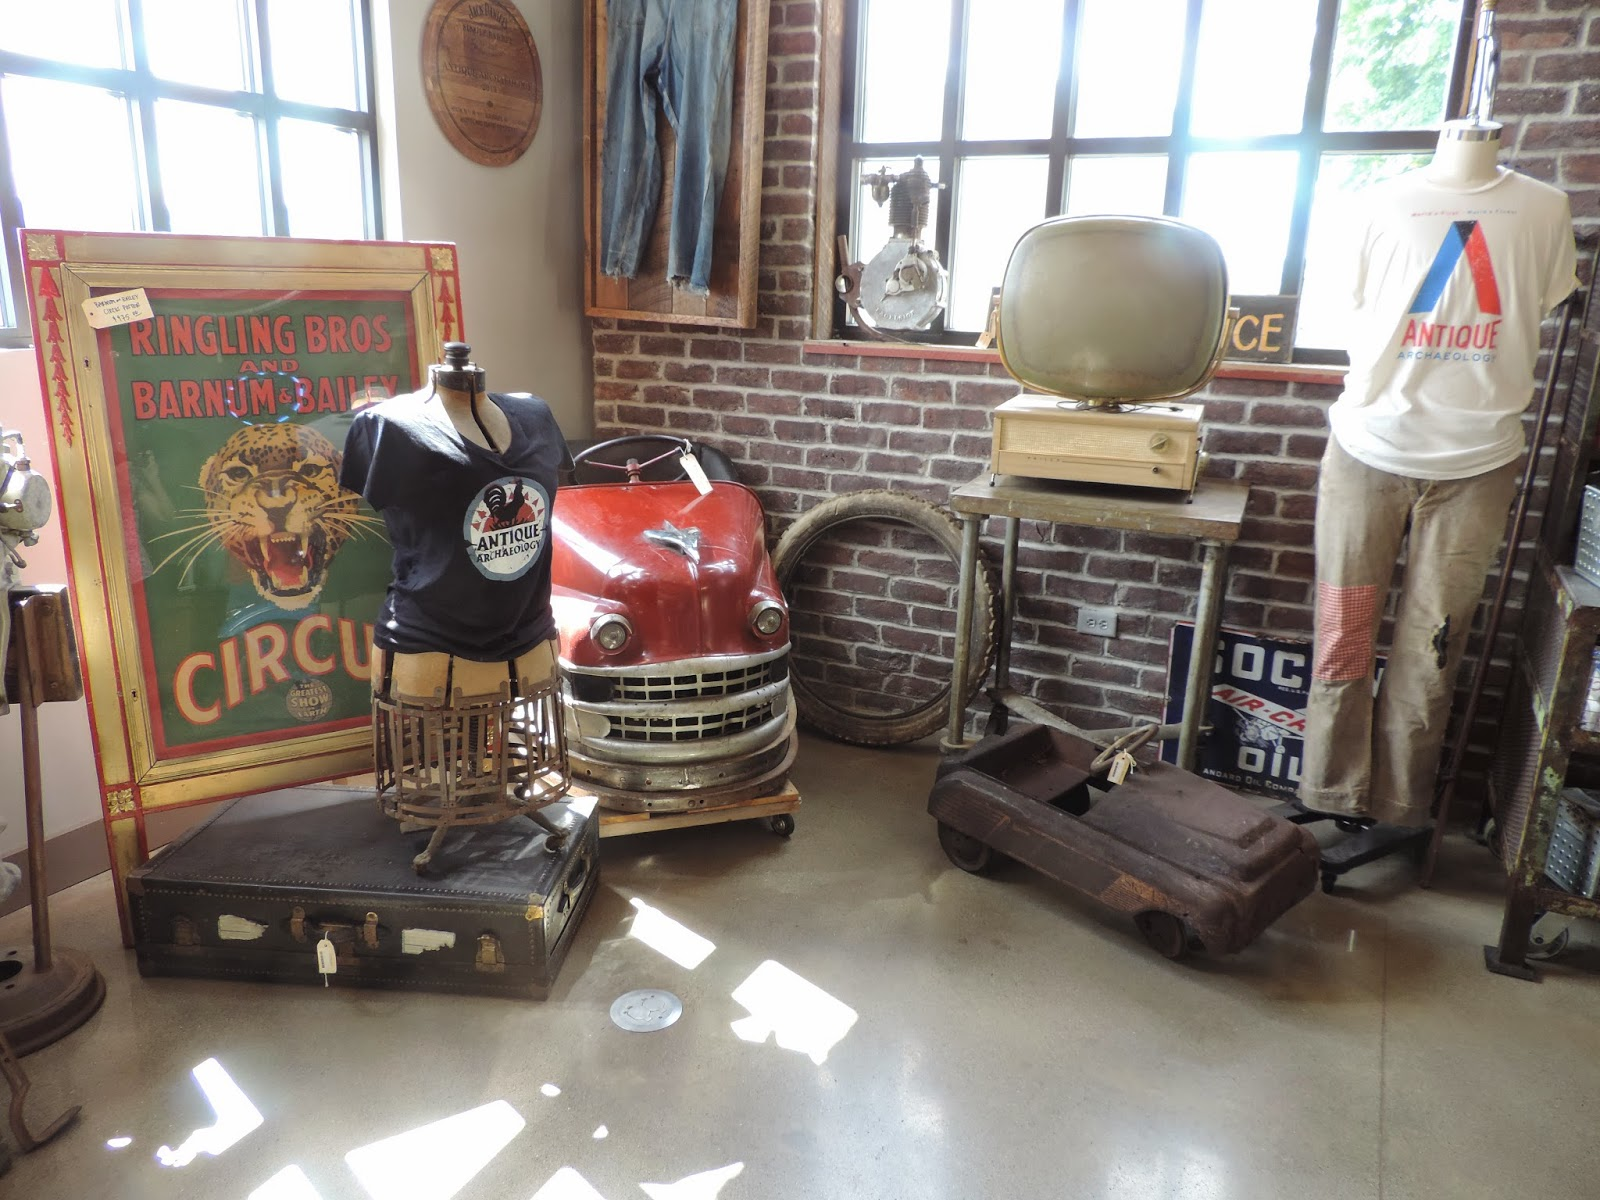 just me antique archaeology american pickers. Black Bedroom Furniture Sets. Home Design Ideas